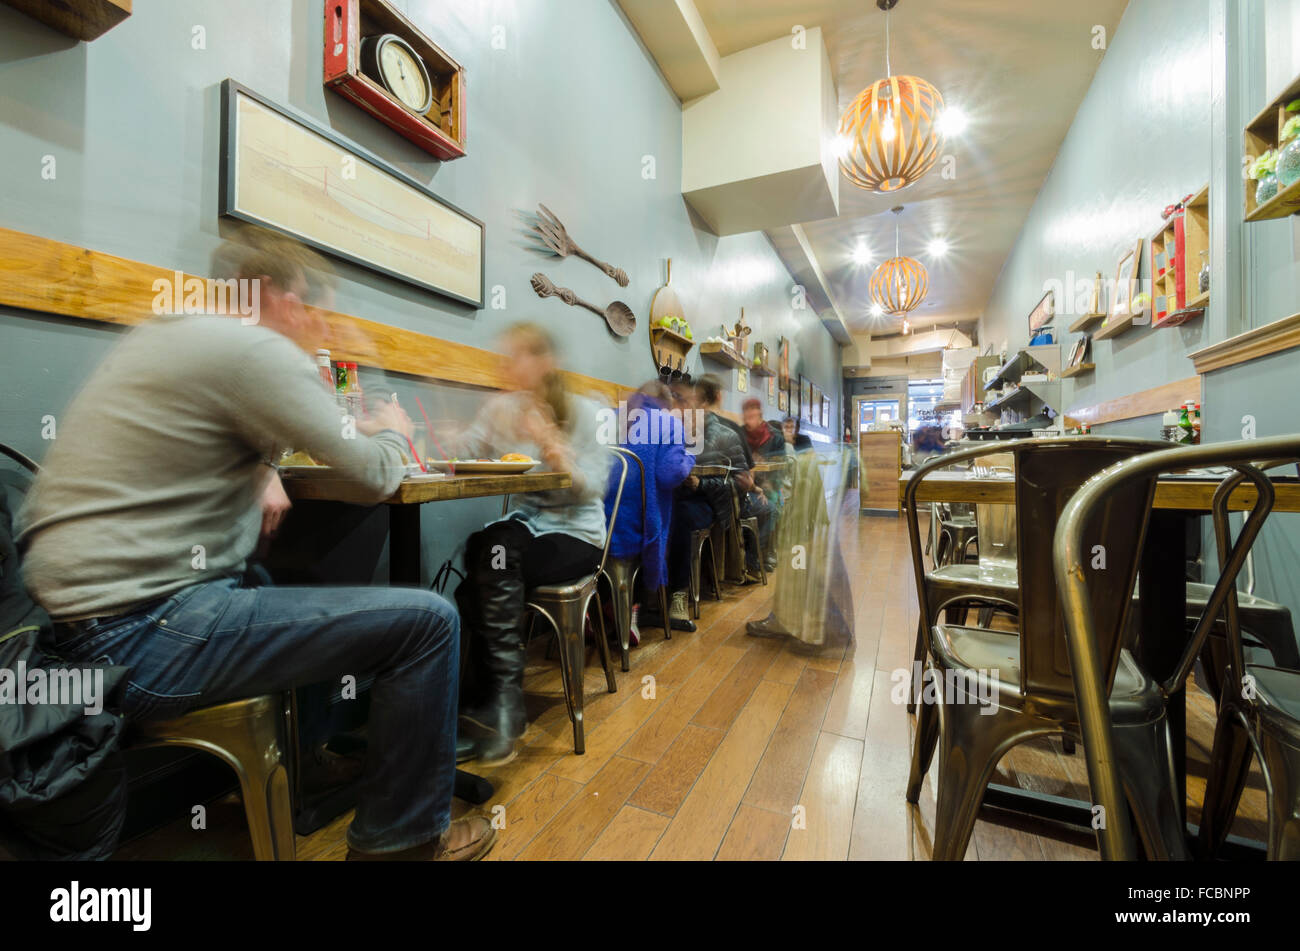 A Hipster Vintage Retro Rustic Yet Modern Cafe Restaurant In San Francisco California View Of The Interior Decoration And